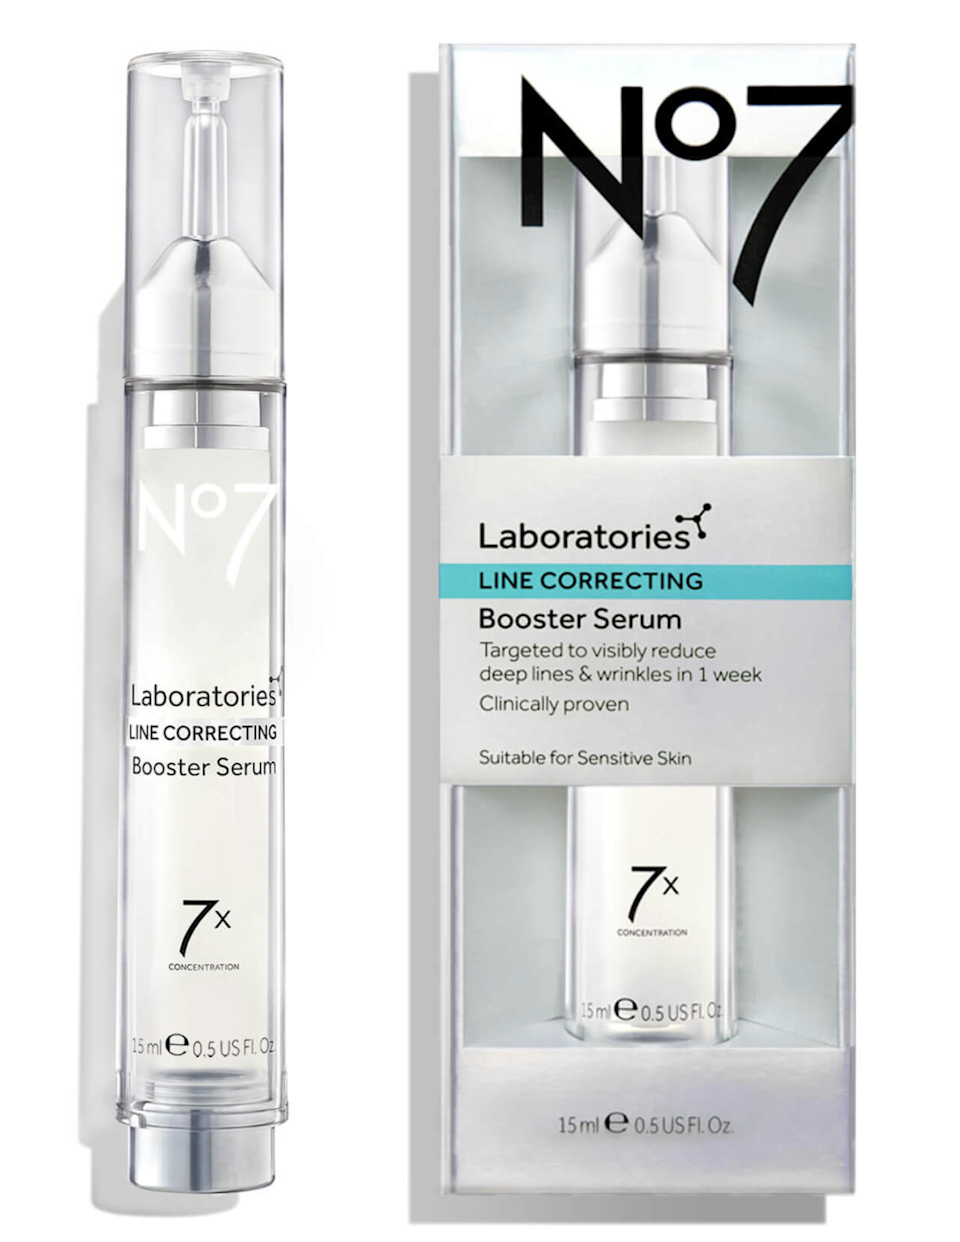 """<h2>No7 Line Correcting Booster Serum</h2><br>R29 writer Jacqueline Kilkita is no stranger to testing out beauty products that often turn into most wanted buys. This month, she tackled a bestselling drugstore brand <a href=""""https://www.refinery29.com/en-us/2021/03/10385656/no7-line-correcting-booster-serum-review-pictures"""" rel=""""nofollow noopener"""" target=""""_blank"""" data-ylk=""""slk:No7's Line Correcting Booster Serum"""" class=""""link rapid-noclick-resp"""">No7's Line Correcting Booster Serum</a> that uses Matrixyl 3000+ to keep skin plump and intact while repairing existing damage. After using the product on her under eyes, Kilkita reported: """"I've been using the serum for just over a week now and, as you can tell, it really does work to iron away lines. In the before image, my under-eye creases extended outwards; looking at the after shot, it's as though someone has taken an eraser to my skin. In all the years of trying eye serums, balms, and creams, nothing has worked quite as well as this.""""<br><br><em>Shop <strong><a href=""""https://www.kohls.com/product/prd-4259701/no7-laboratories-line-correcting-booster-serum.jsp"""" rel=""""nofollow noopener"""" target=""""_blank"""" data-ylk=""""slk:Kohl's"""" class=""""link rapid-noclick-resp"""">Kohl's</a></strong></em><br><br><strong>No7</strong> Laboratories Line Correcting Booster Serum, $, available at <a href=""""https://go.skimresources.com/?id=30283X879131&url=https%3A%2F%2Fwww.kohls.com%2Fproduct%2Fprd-4259701%2Fno7-laboratories-line-correcting-booster-serum.jsp"""" rel=""""nofollow noopener"""" target=""""_blank"""" data-ylk=""""slk:Kohl's"""" class=""""link rapid-noclick-resp"""">Kohl's</a>"""